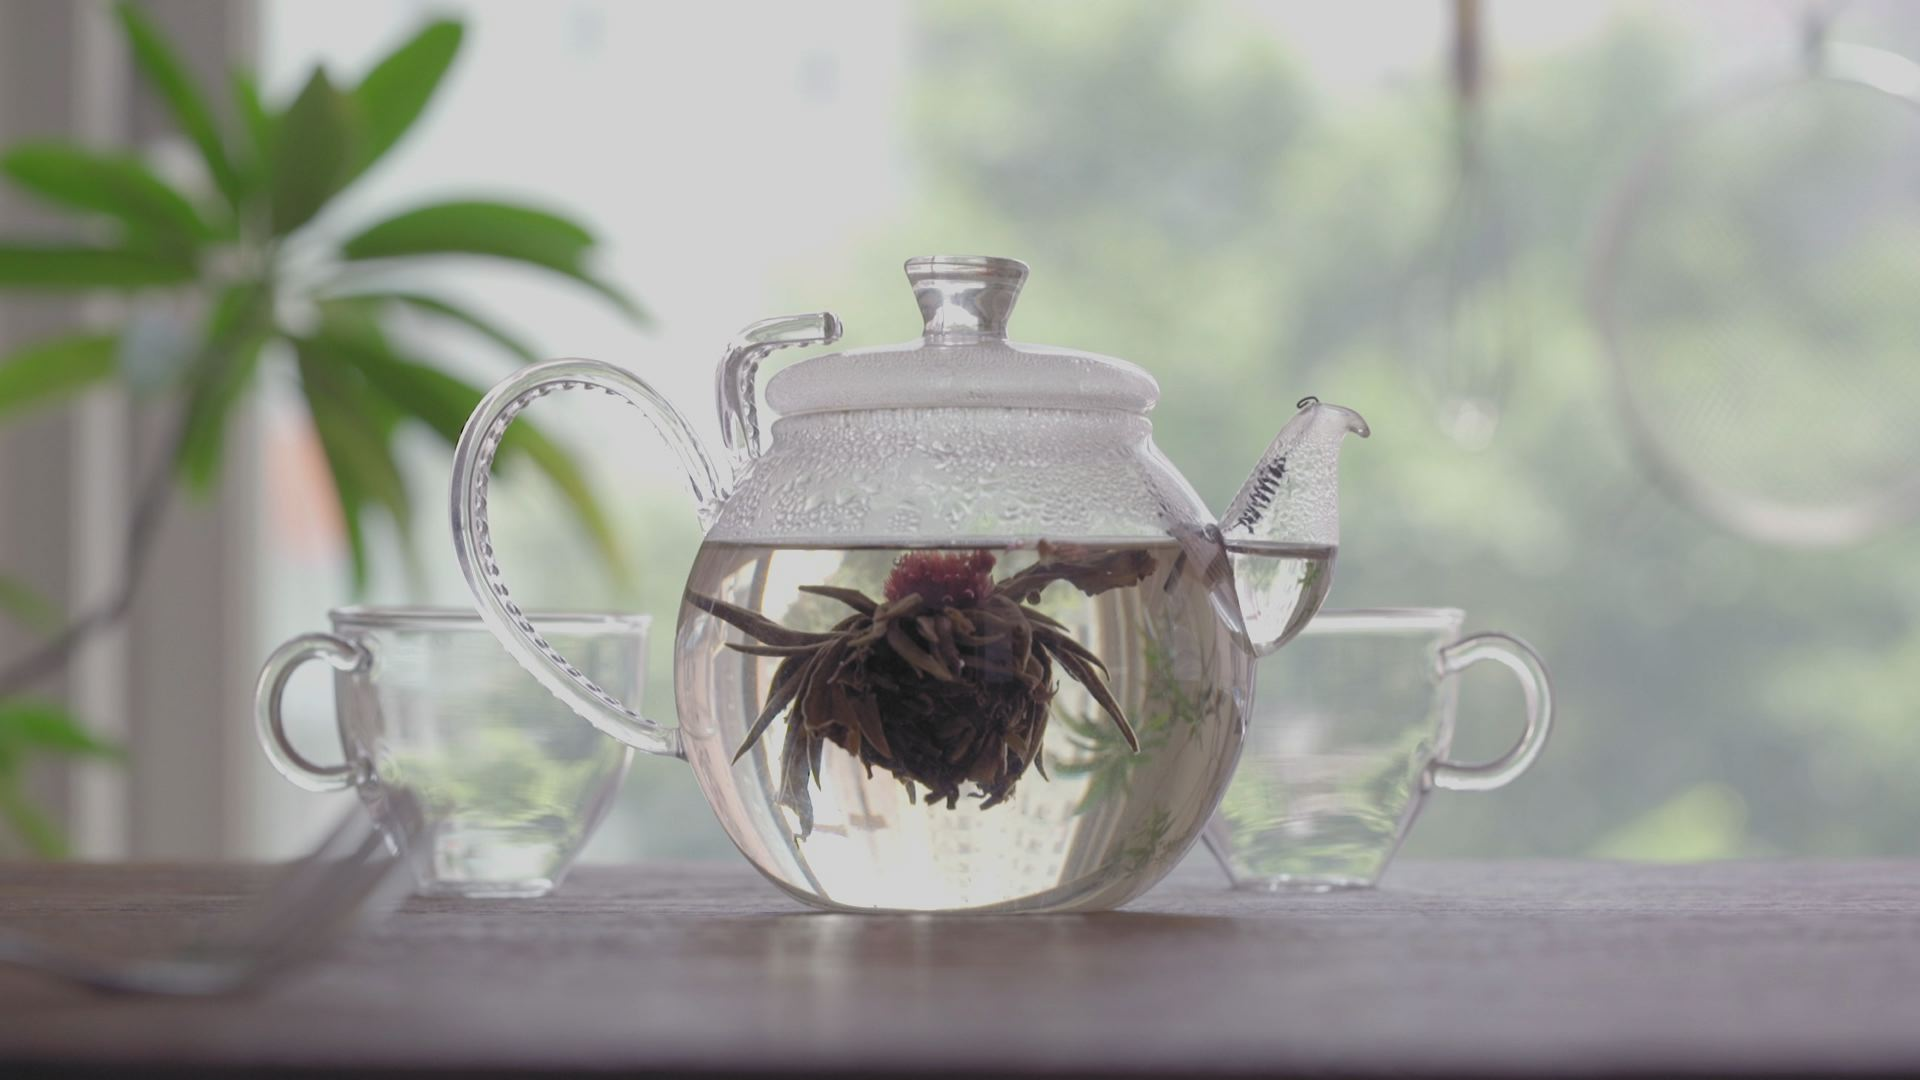 Live-action tea pot brewing